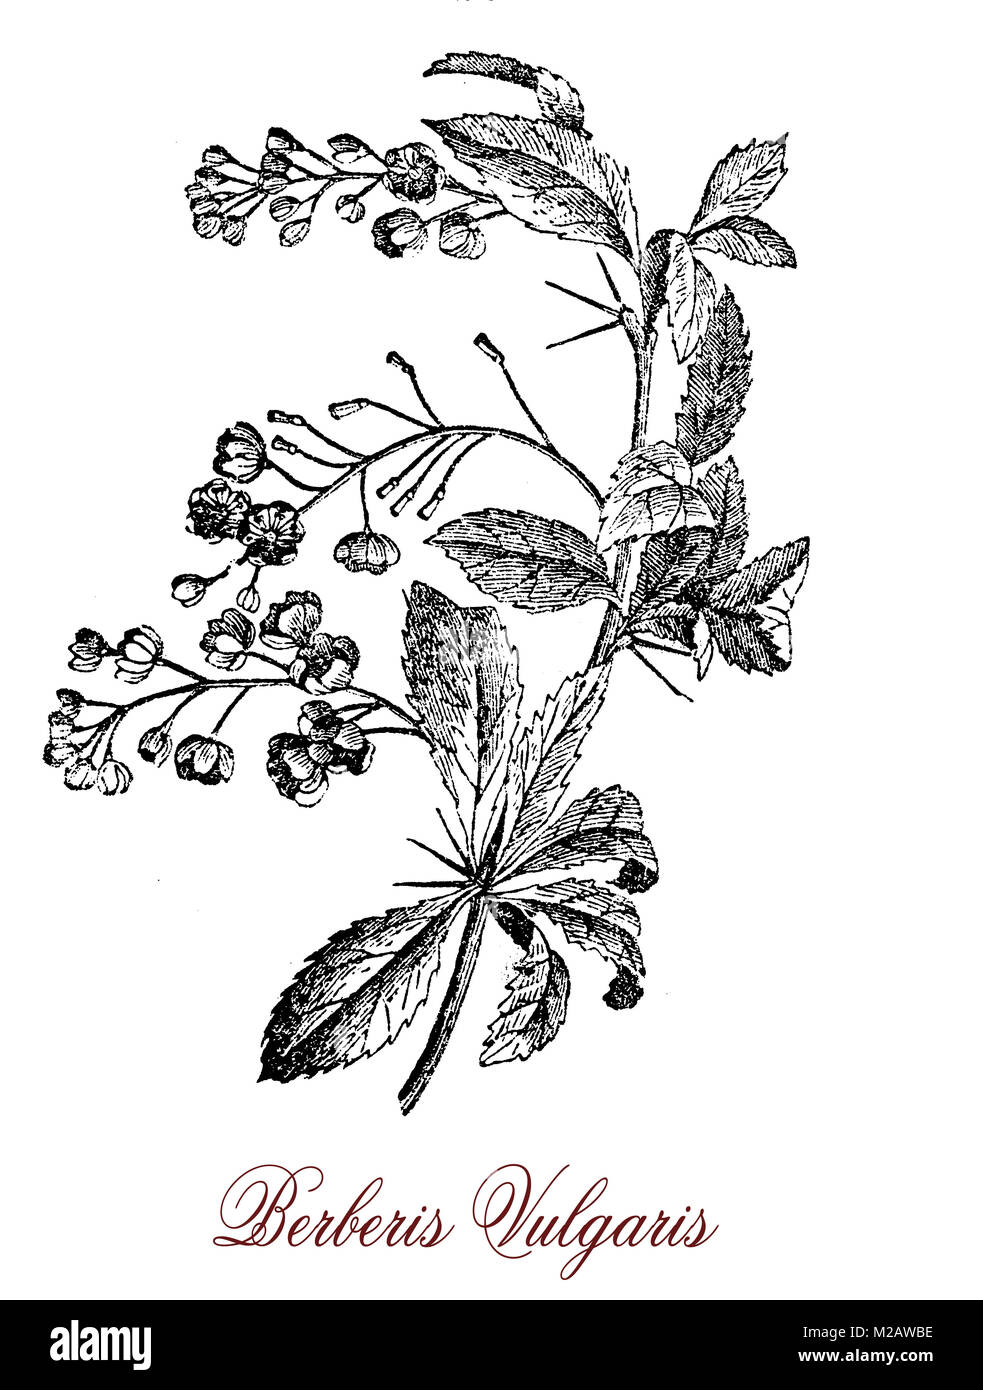 Vintage engraving of Berberis vulgaris or barberry, shrub cultivated as fruit for the red berries rich in vitamin - Stock Image